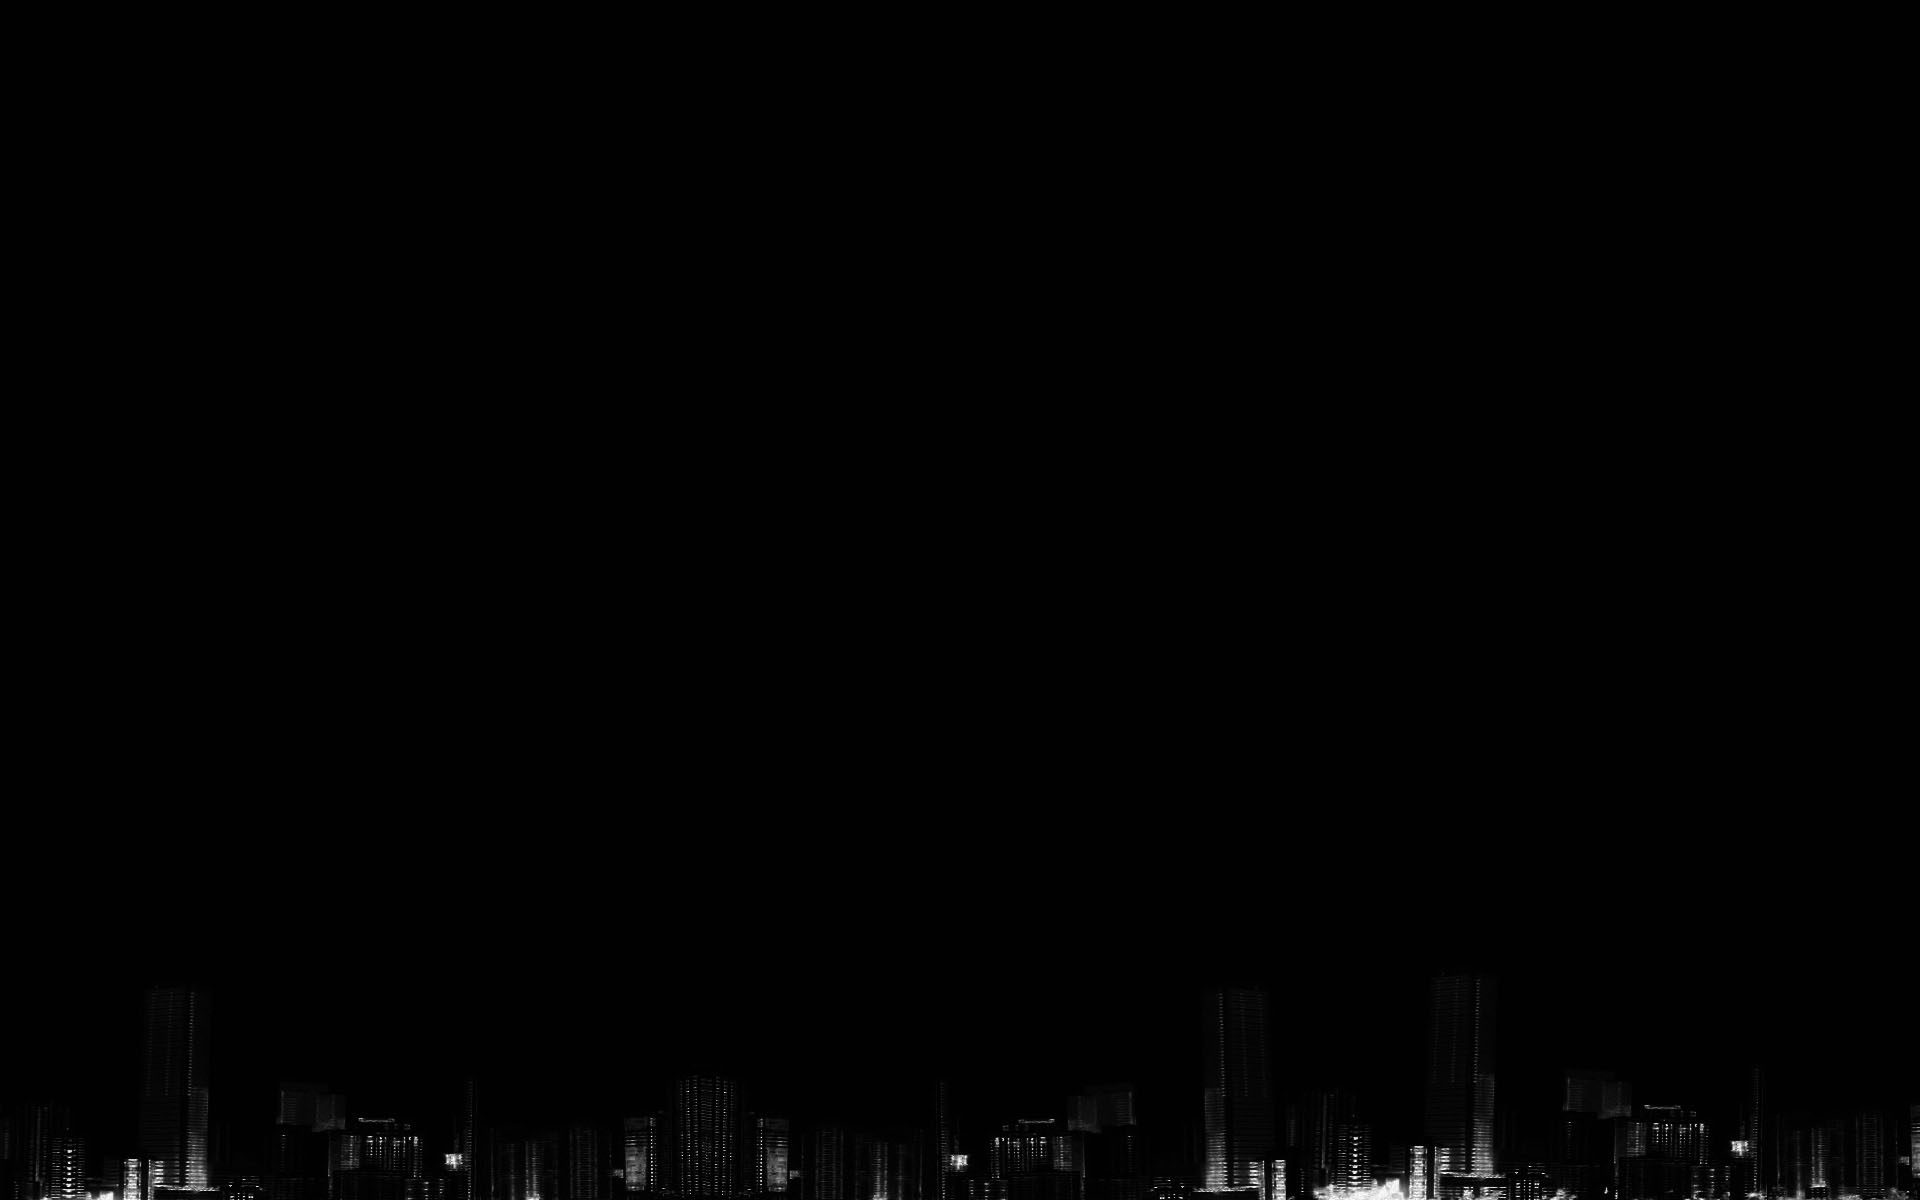 Collection of Black Backgrounds Wallpapers on HDWallpapers